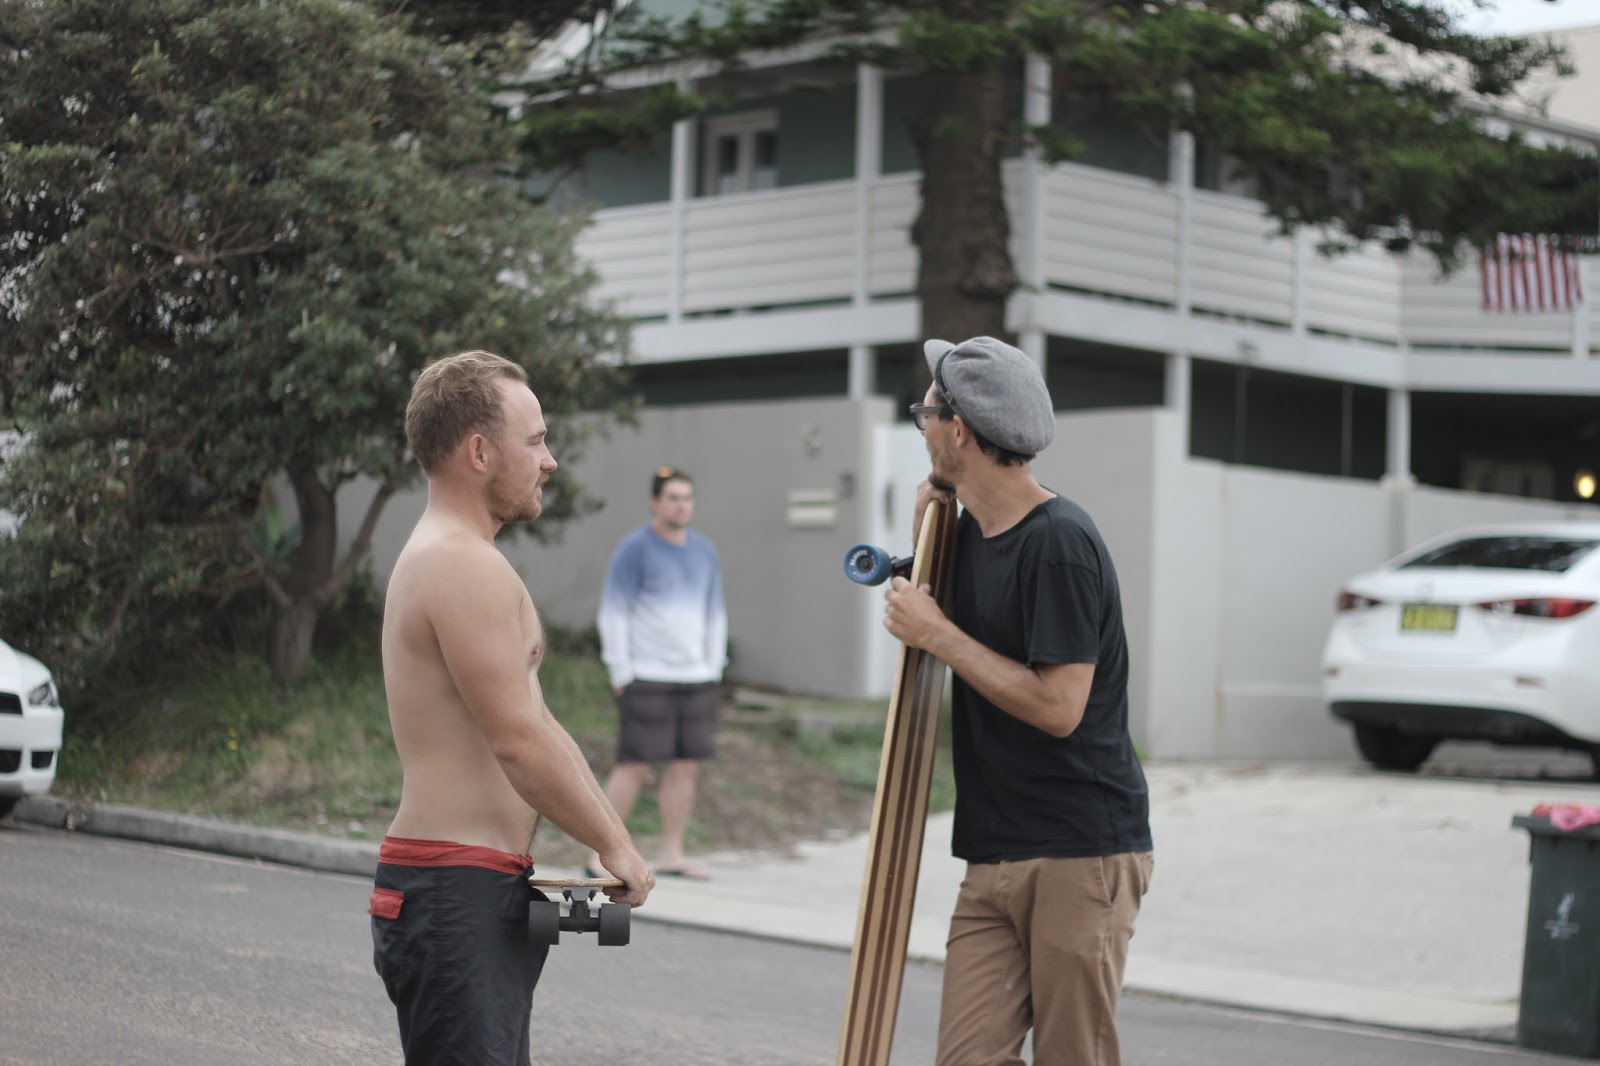 26-03-2016-australia-siebert-surfboards-08